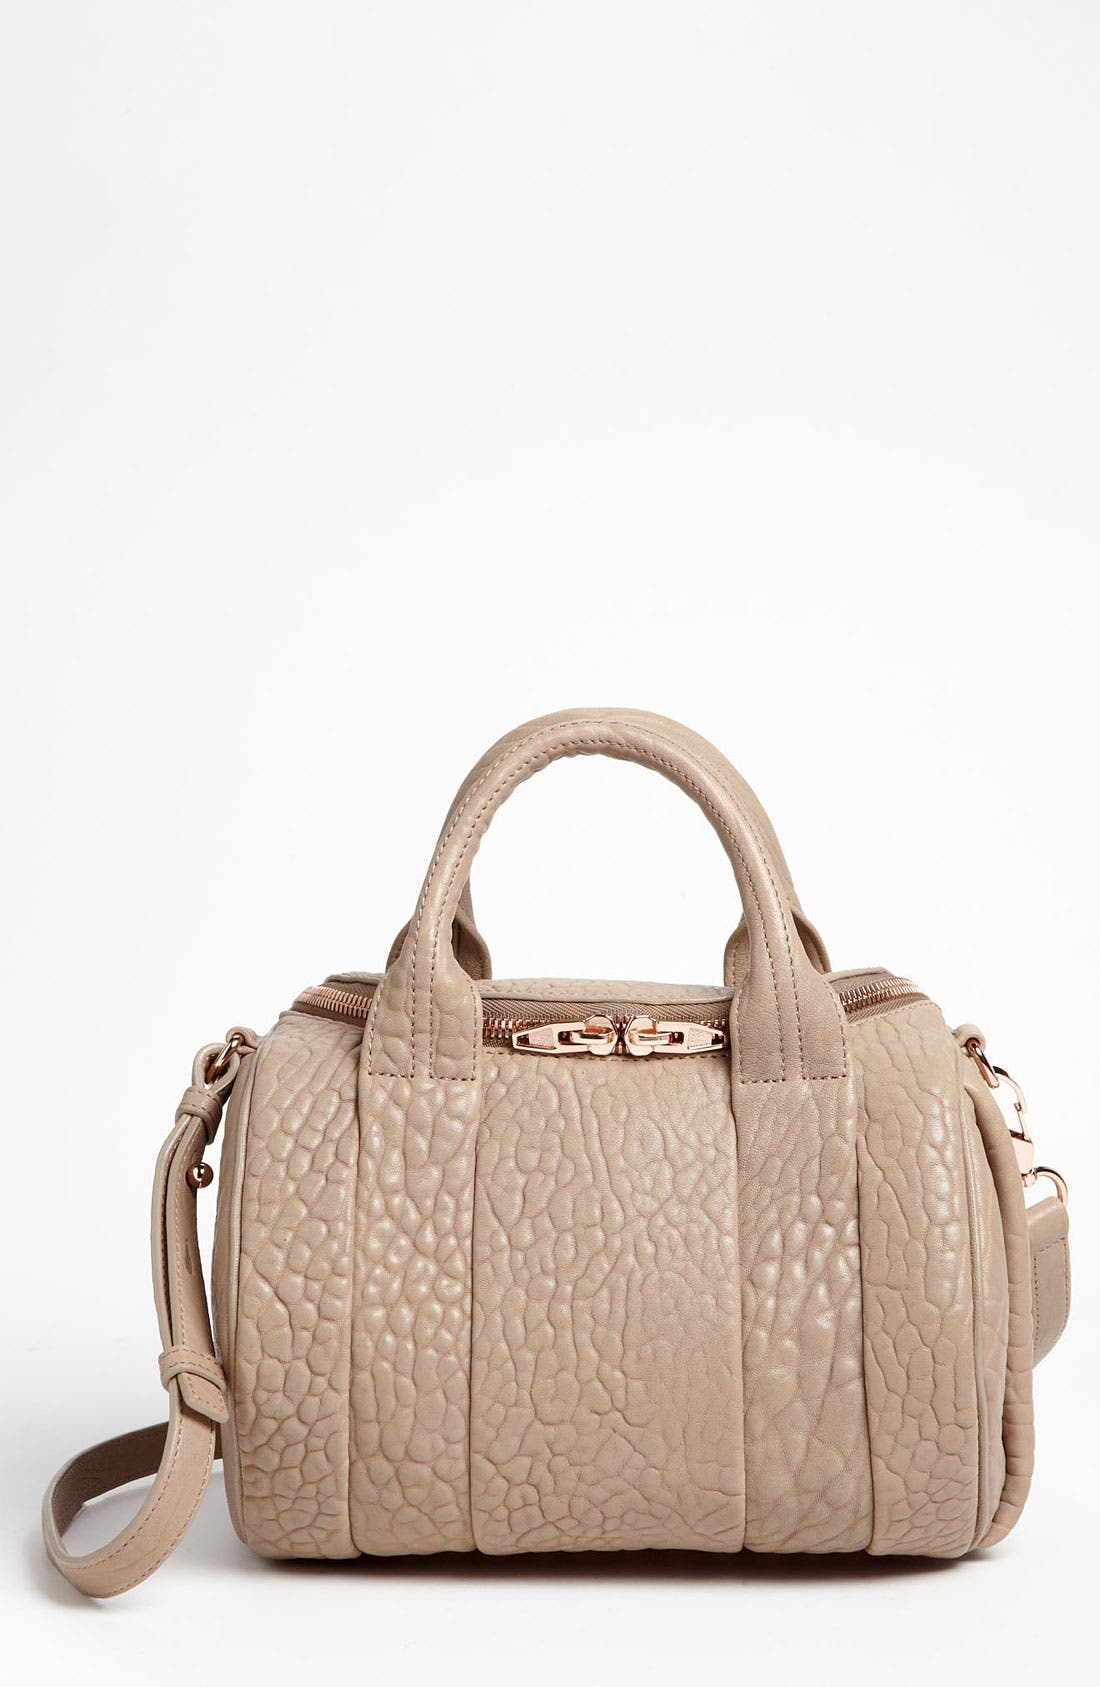 Main Image - Alexander Wang 'Rockie - Rosegold' Leather Shoulder Satchel